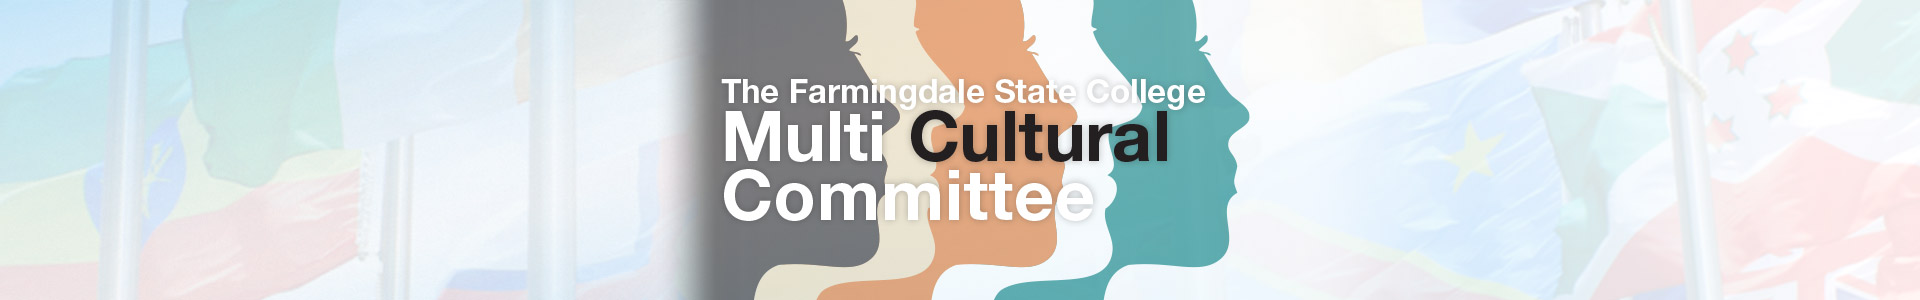 The Farmingdale State College Multicultural Committee, five multi-colored silhouettes as background.